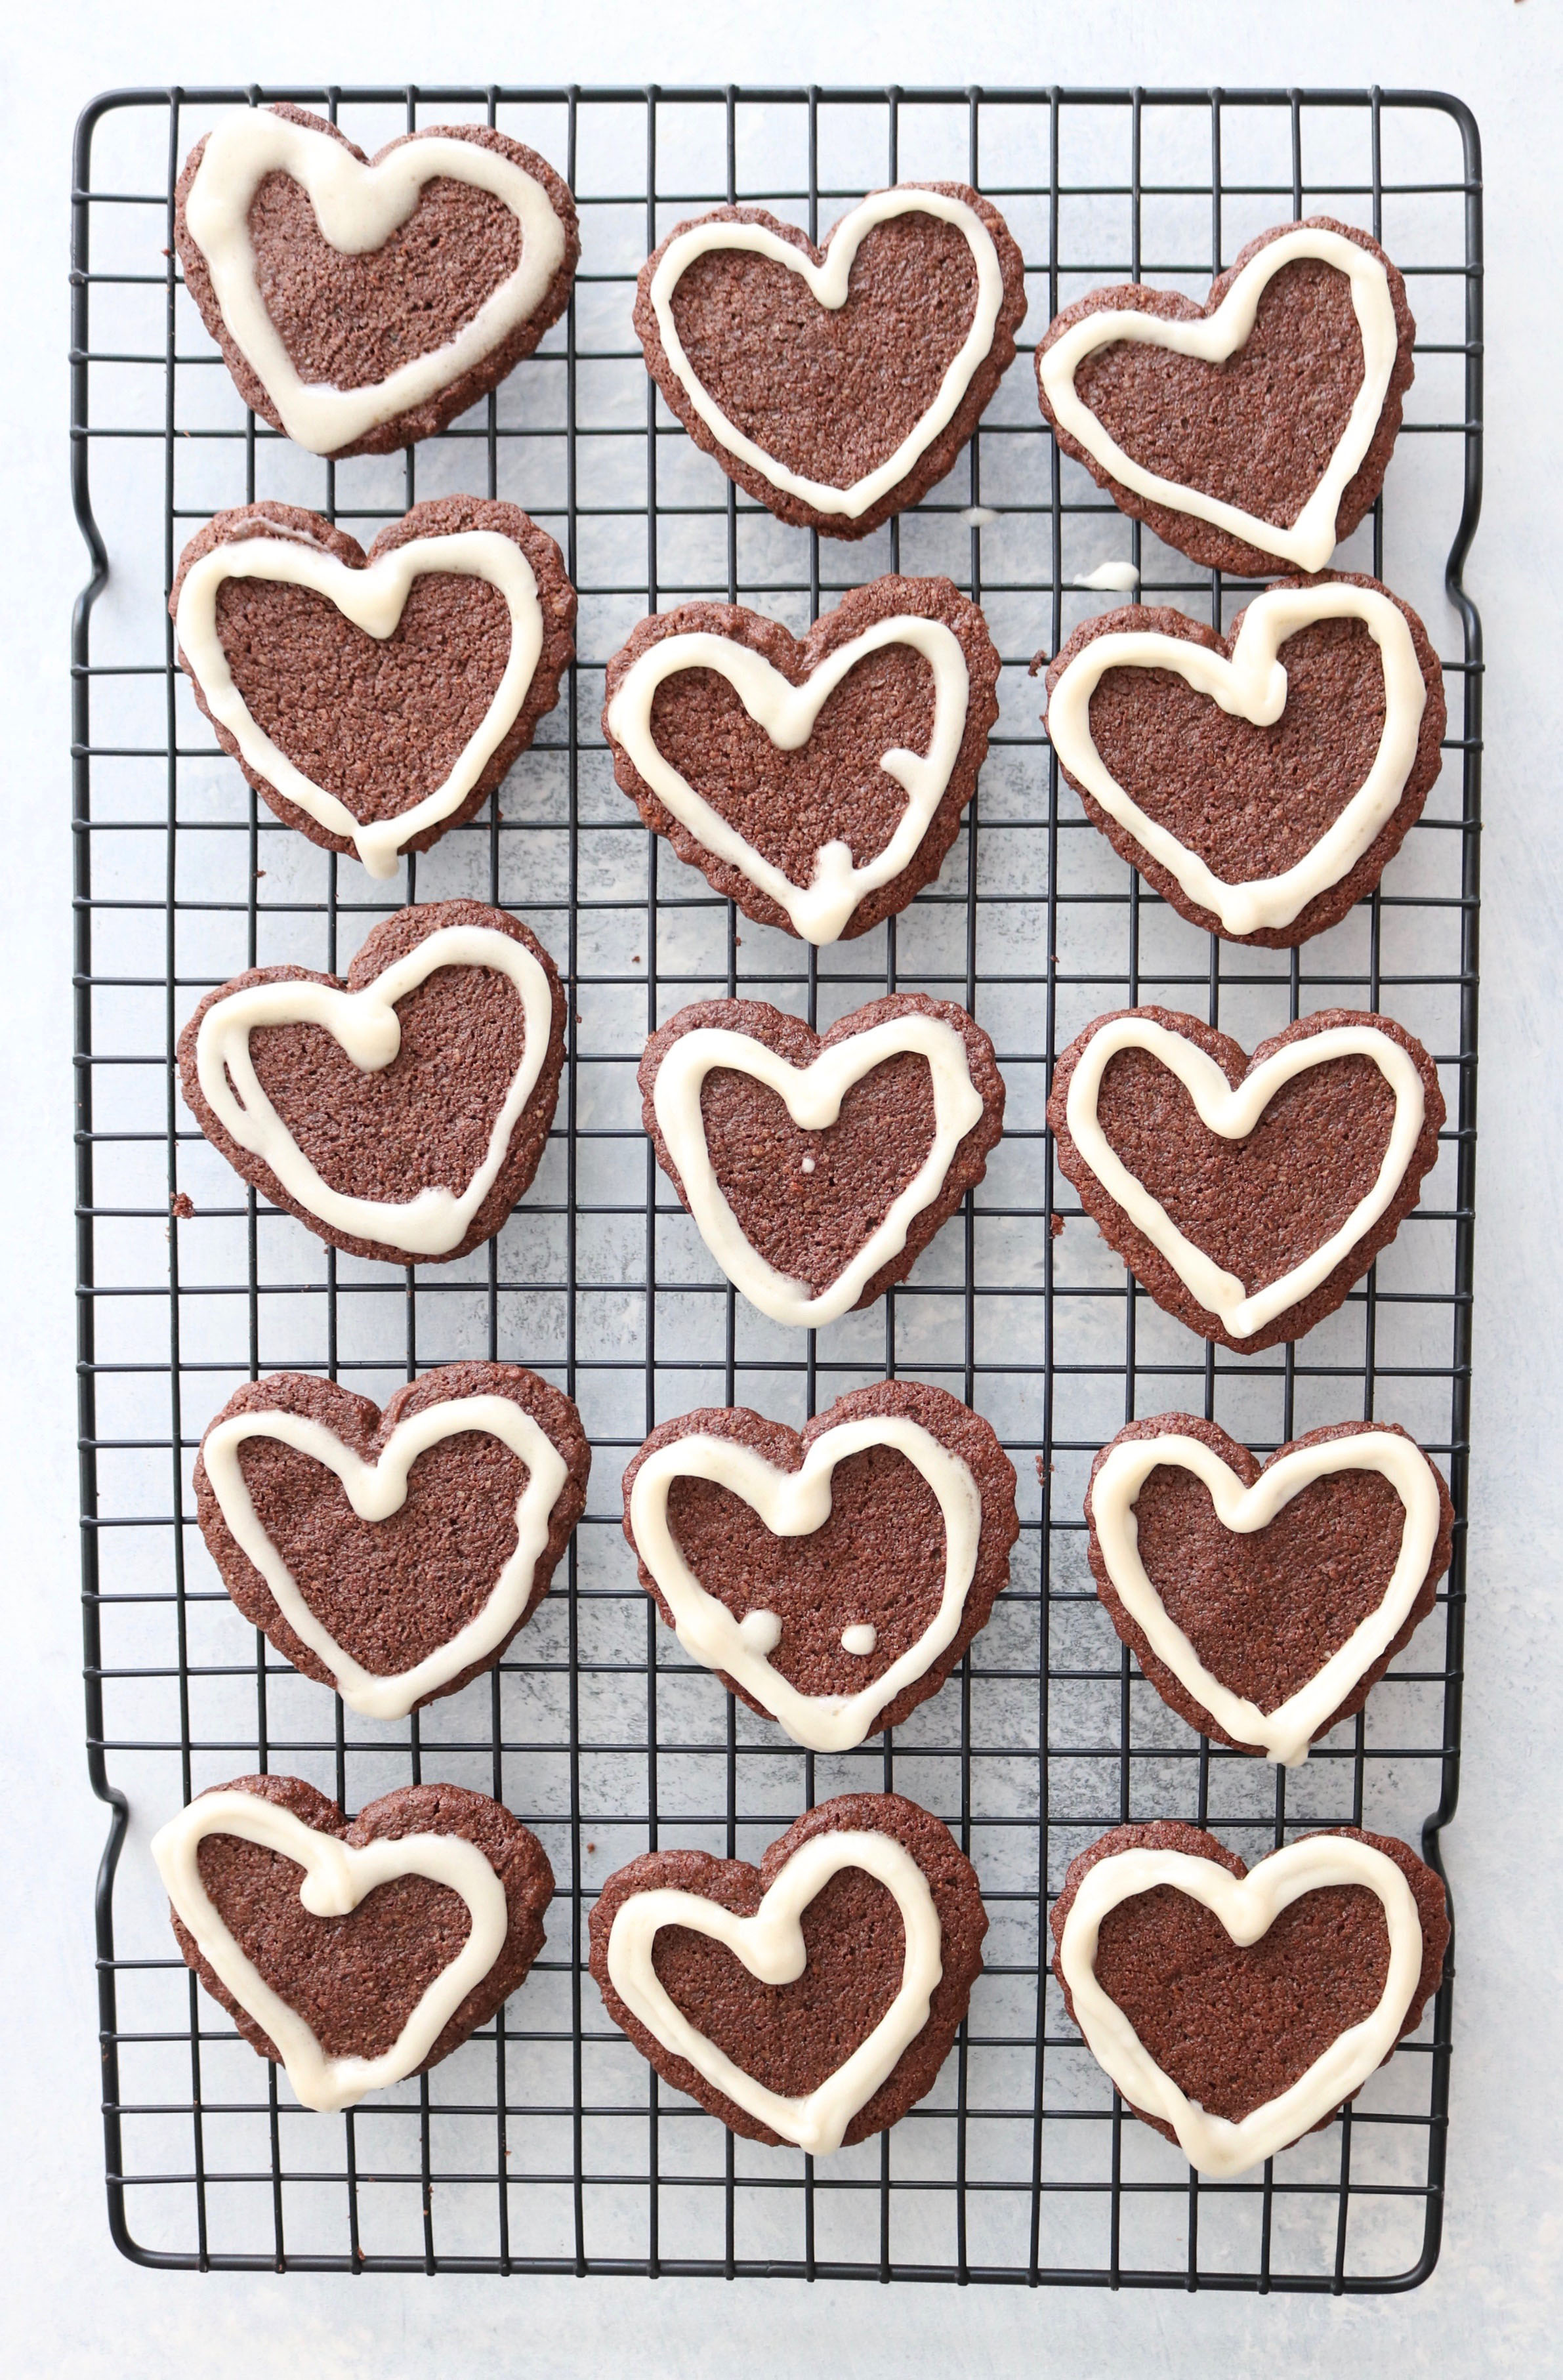 Chocolate Heart Cookies from Lindsay at The Toasted Pine Nut